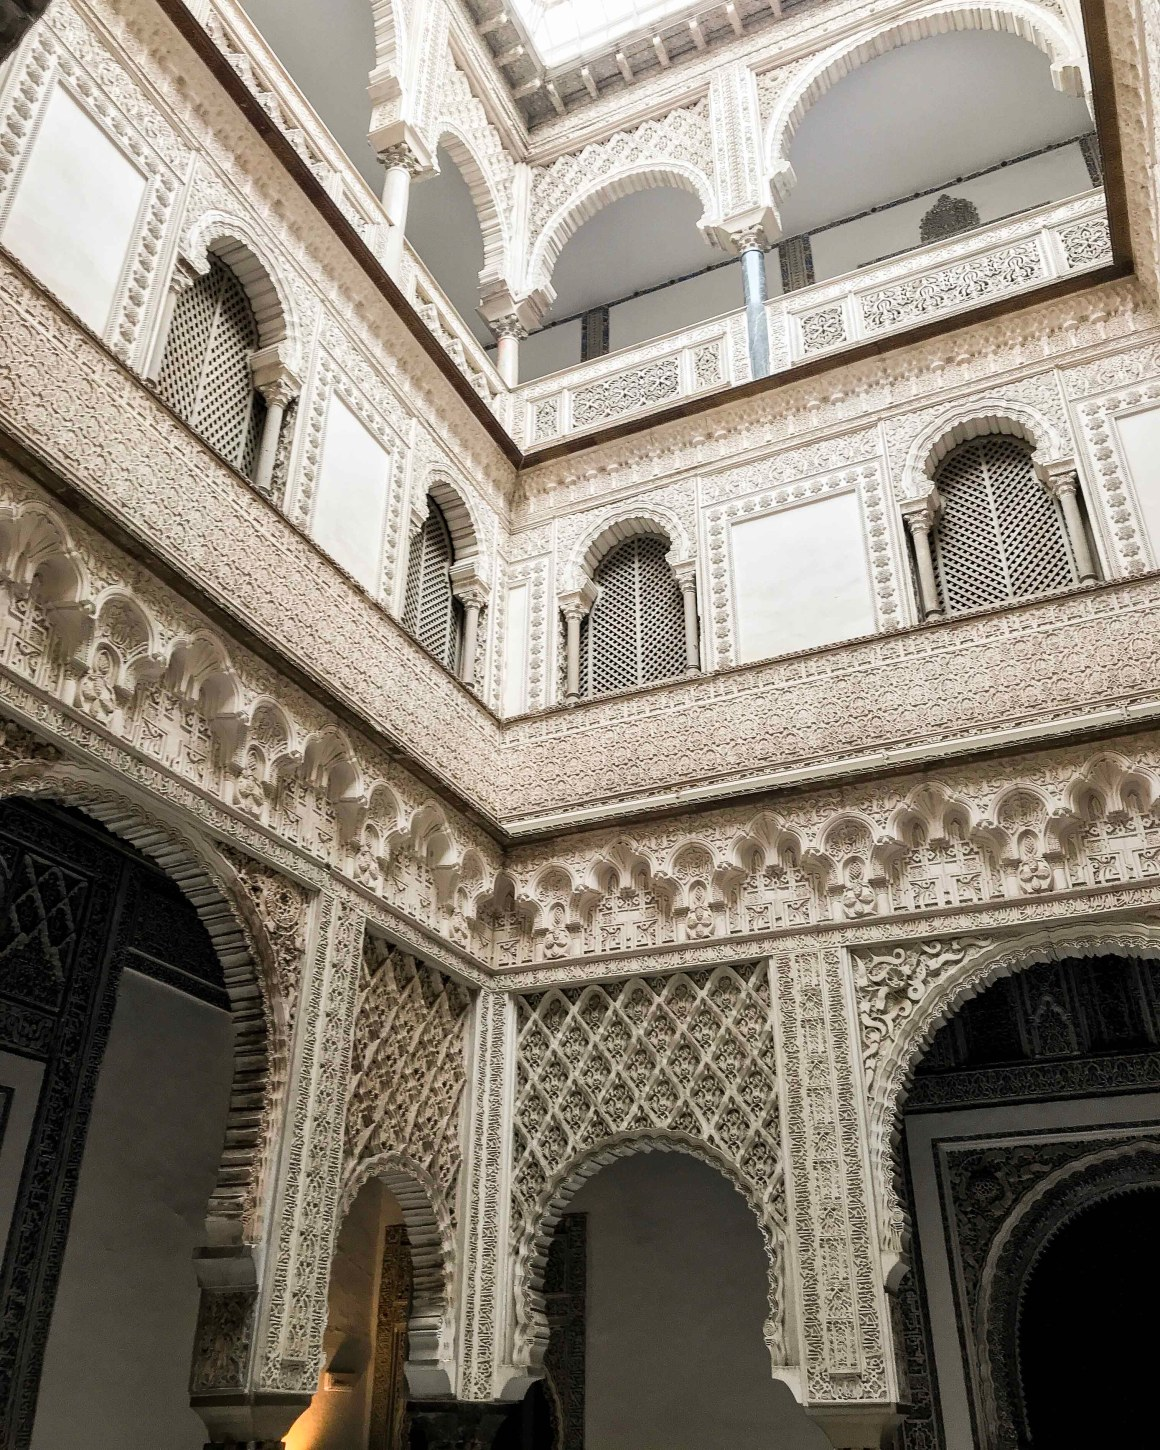 moorish architecture with carved walls